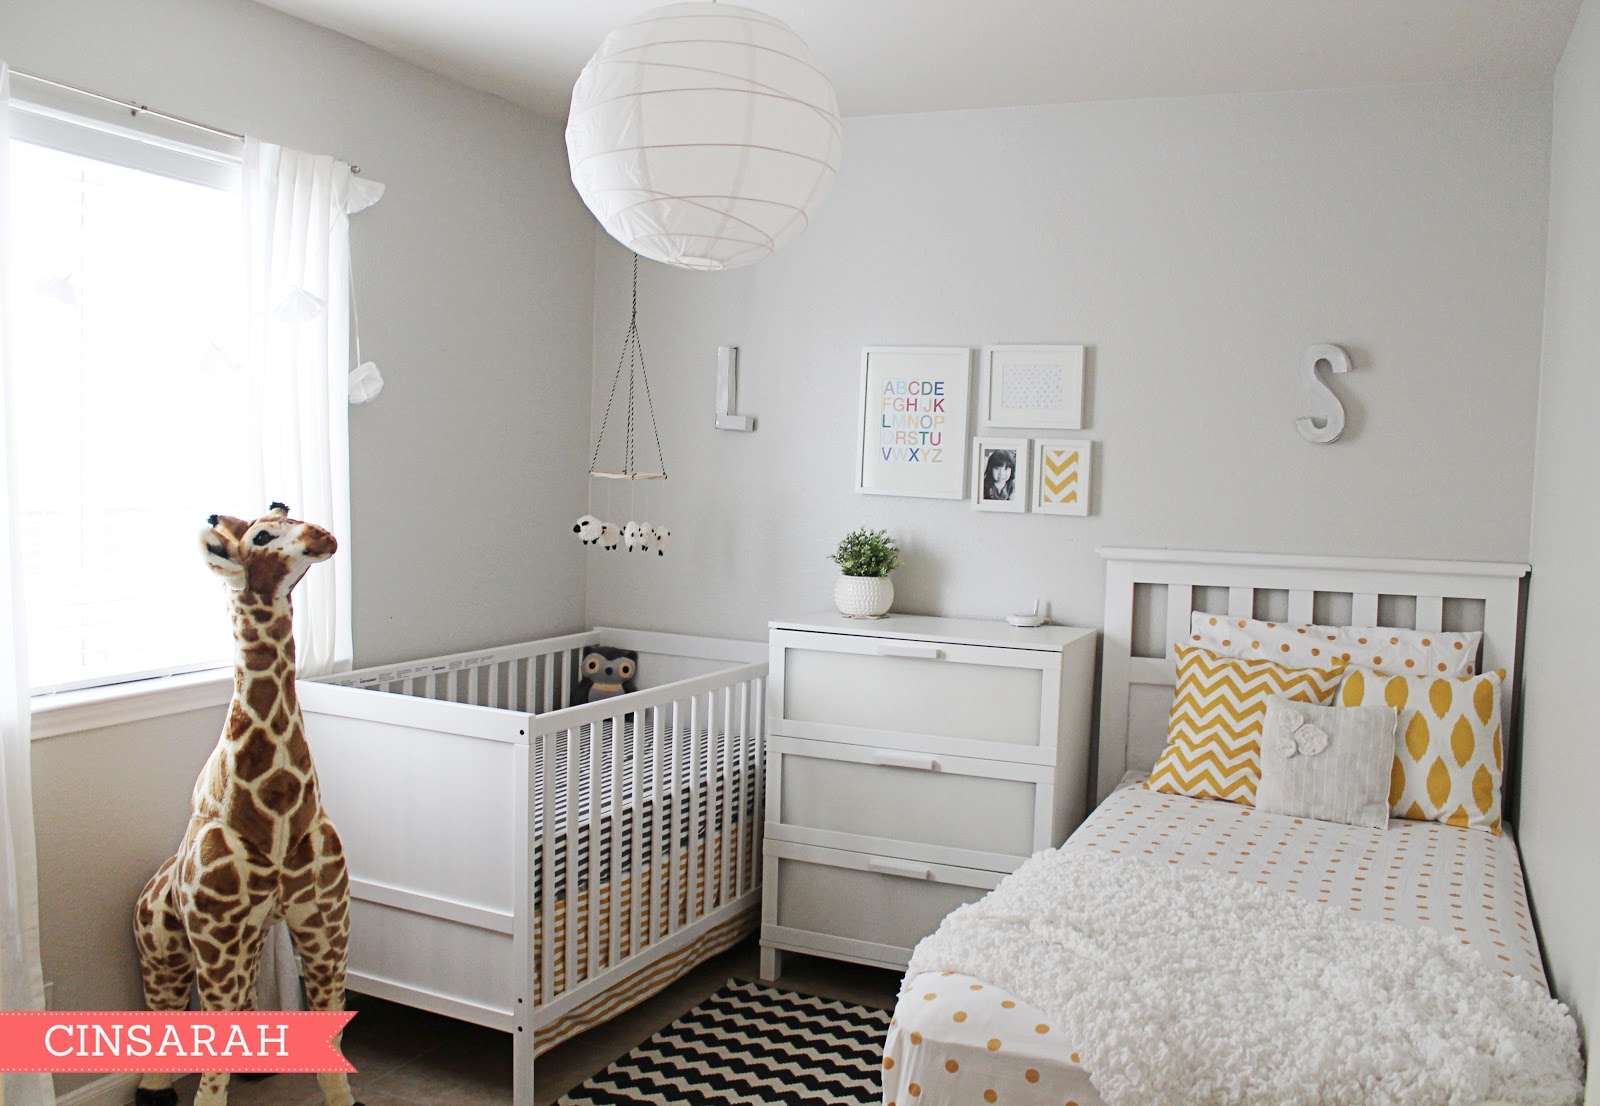 cinsarah levi 39 s shared nursery reveal. Black Bedroom Furniture Sets. Home Design Ideas